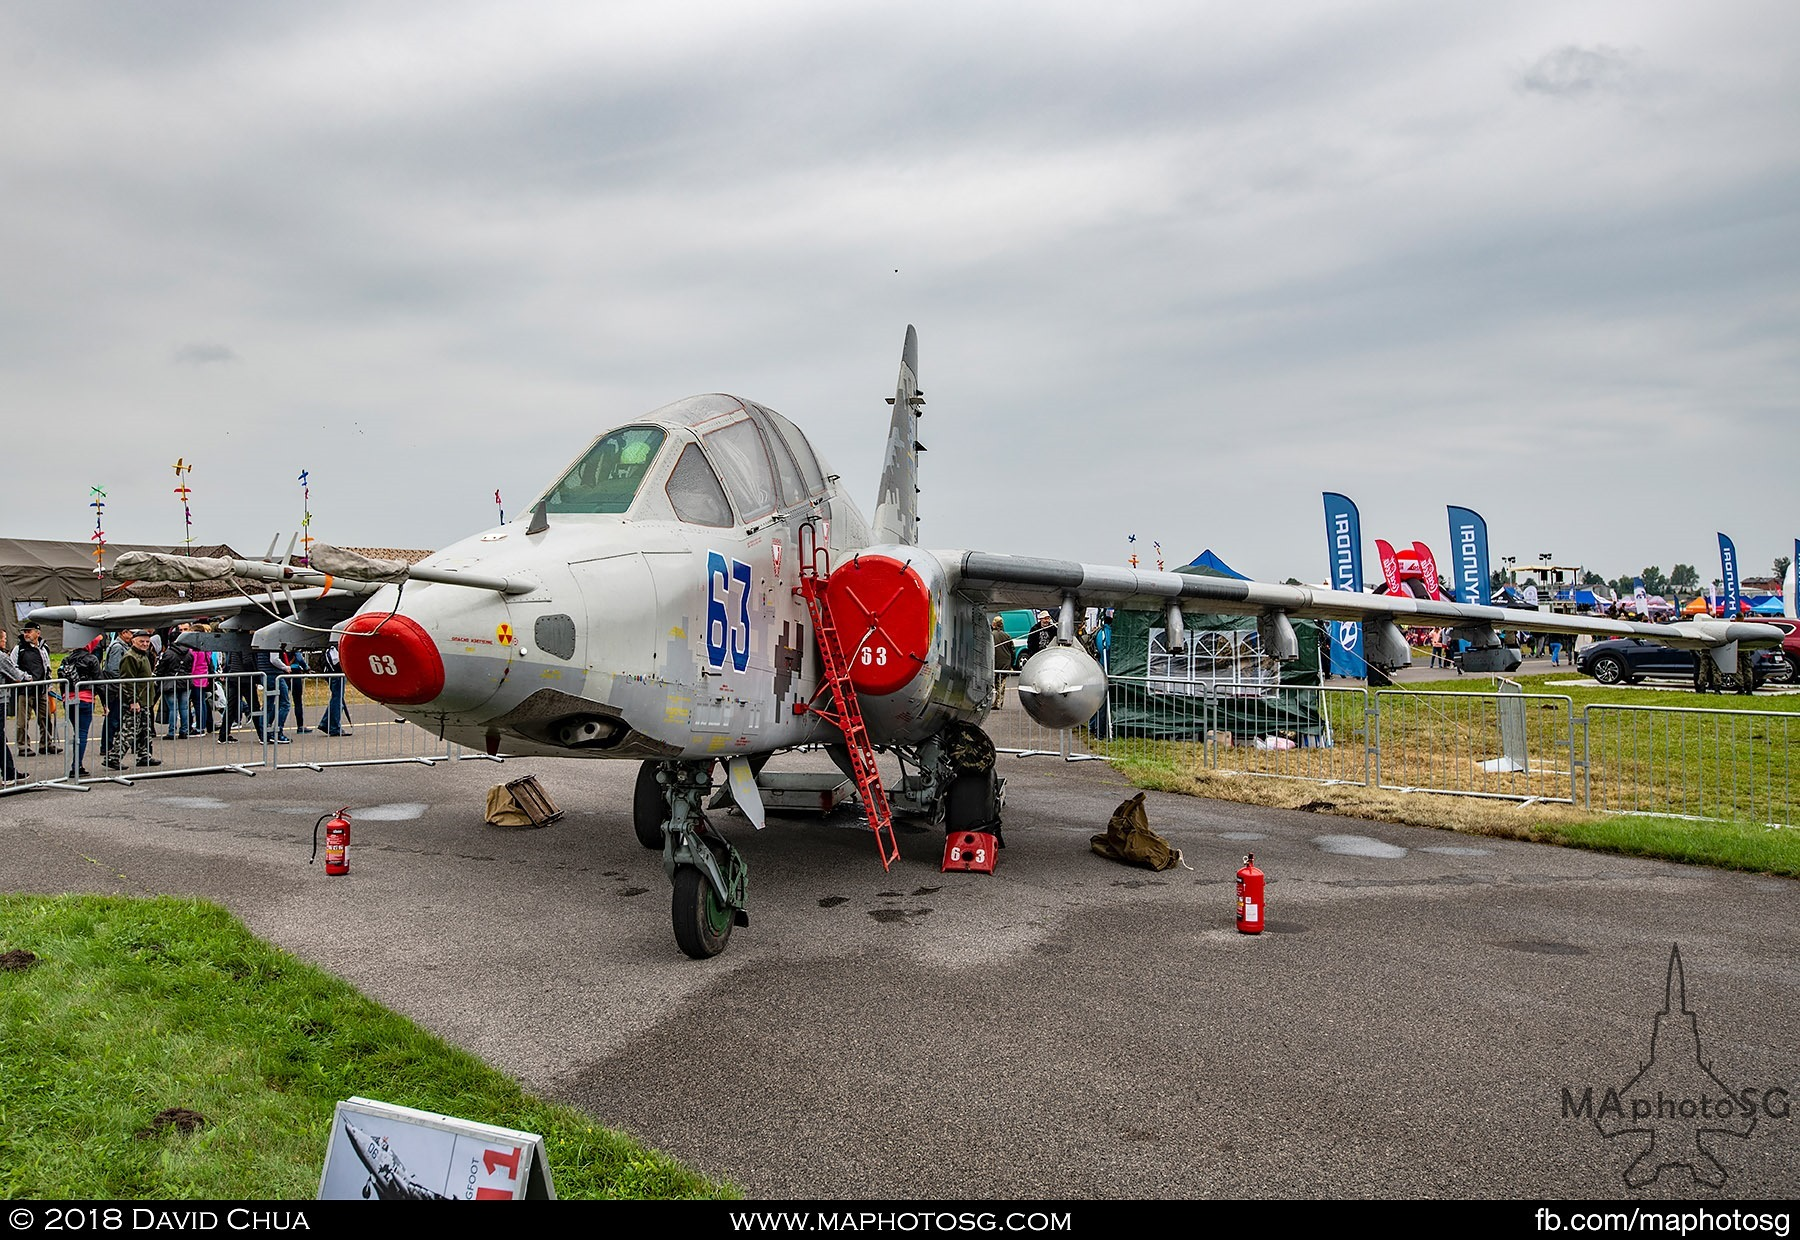 08. Ukranian Air Force Su-25 Frogfoot at static display